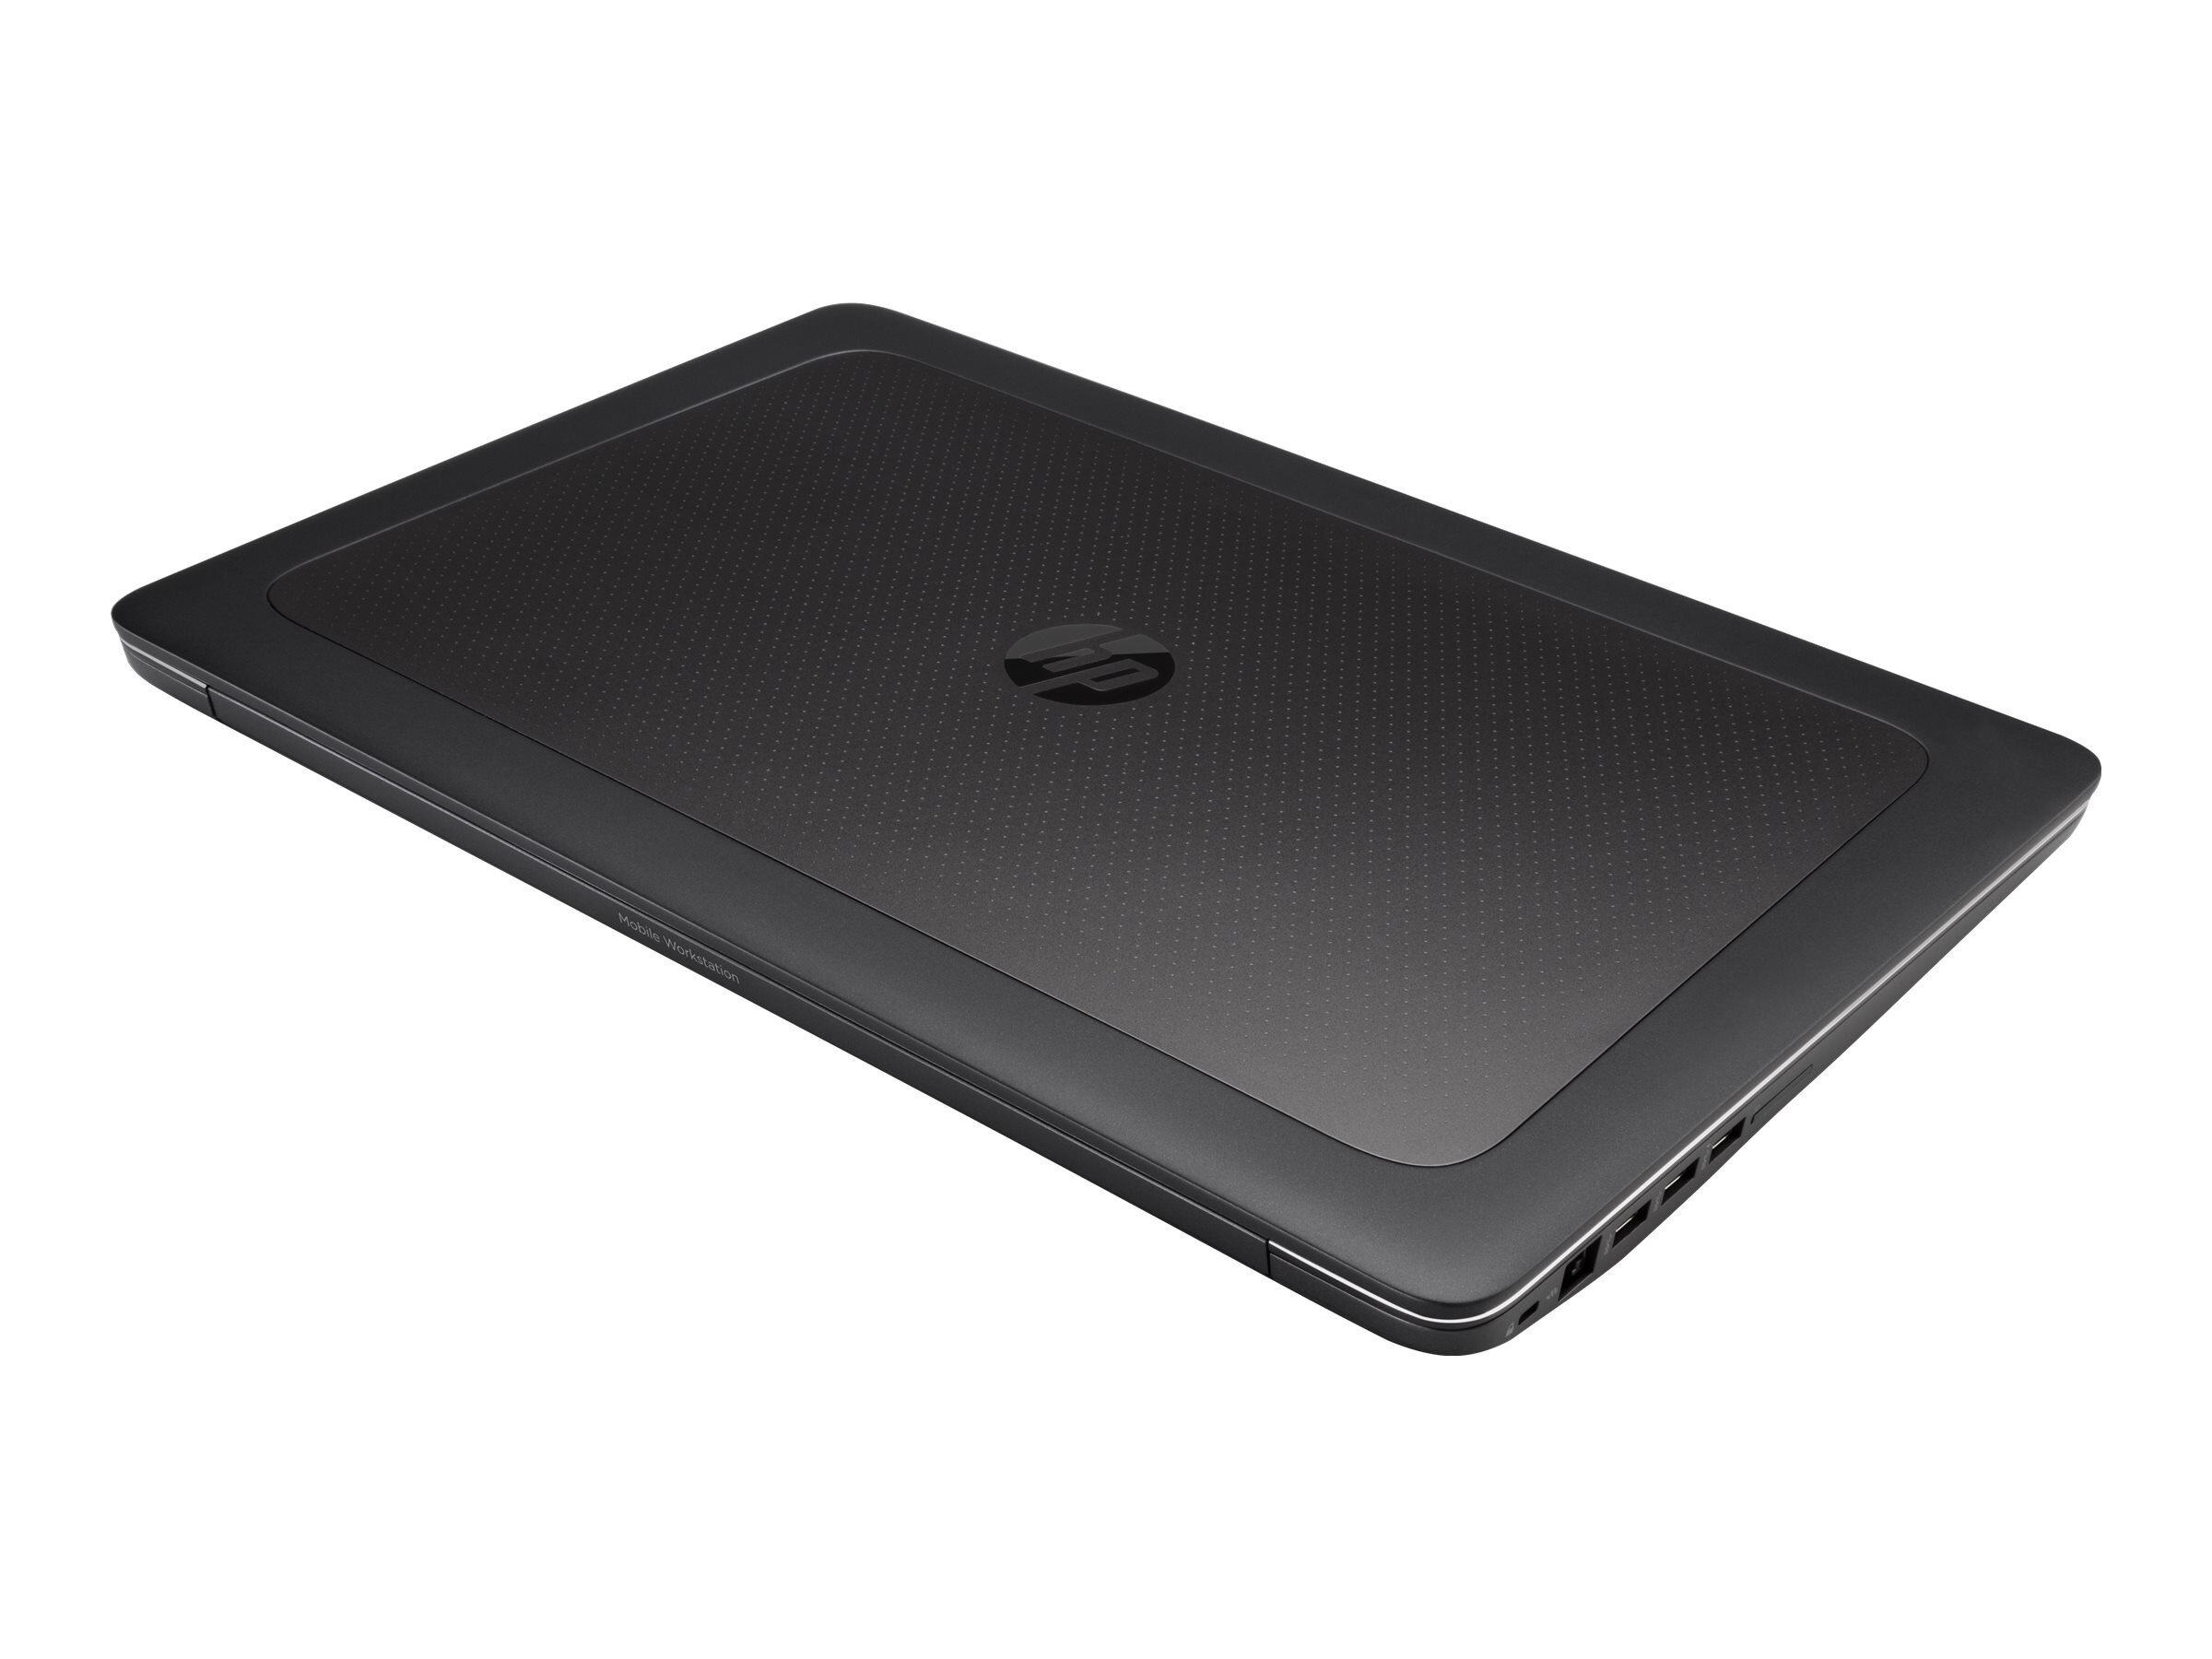 HP ZBook 17 G3 Core i7-6820HQ 2.7GHz 16GB 256GB SSD ac BT FR WC M3000M 17.3 FHD W7P64-W10P